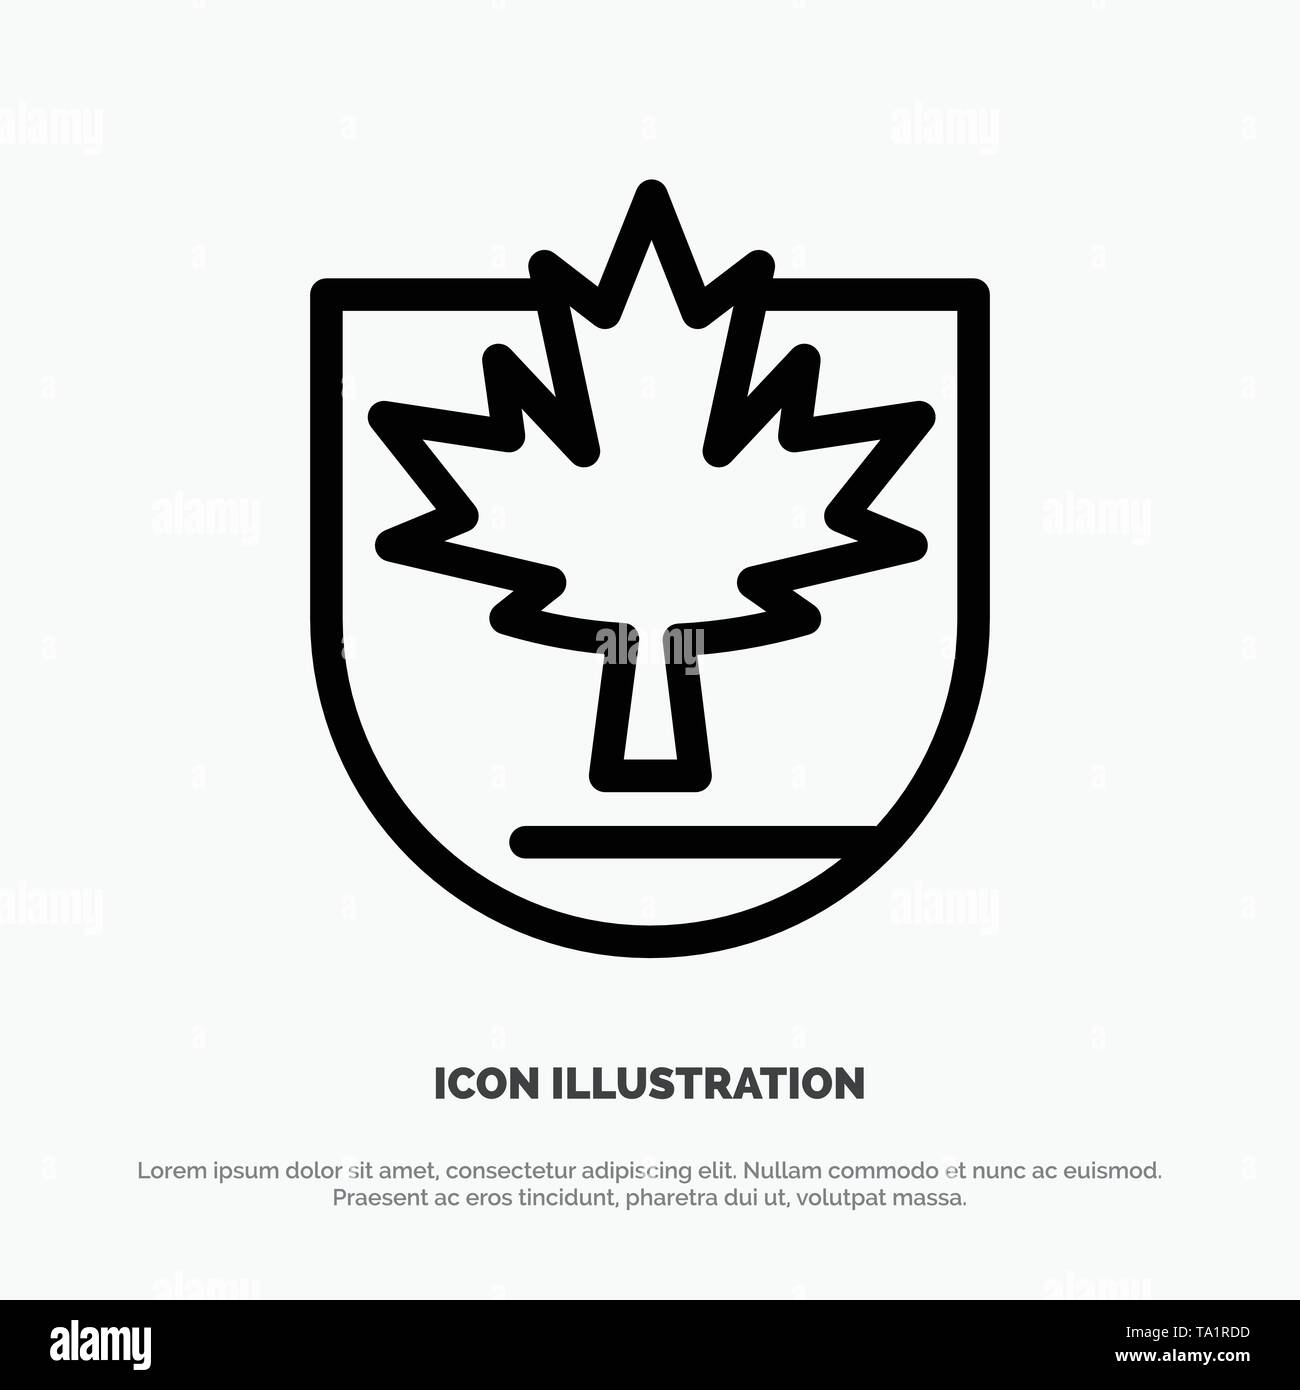 Security, Leaf, Canada, Shield Line Icon Vector - Stock Image